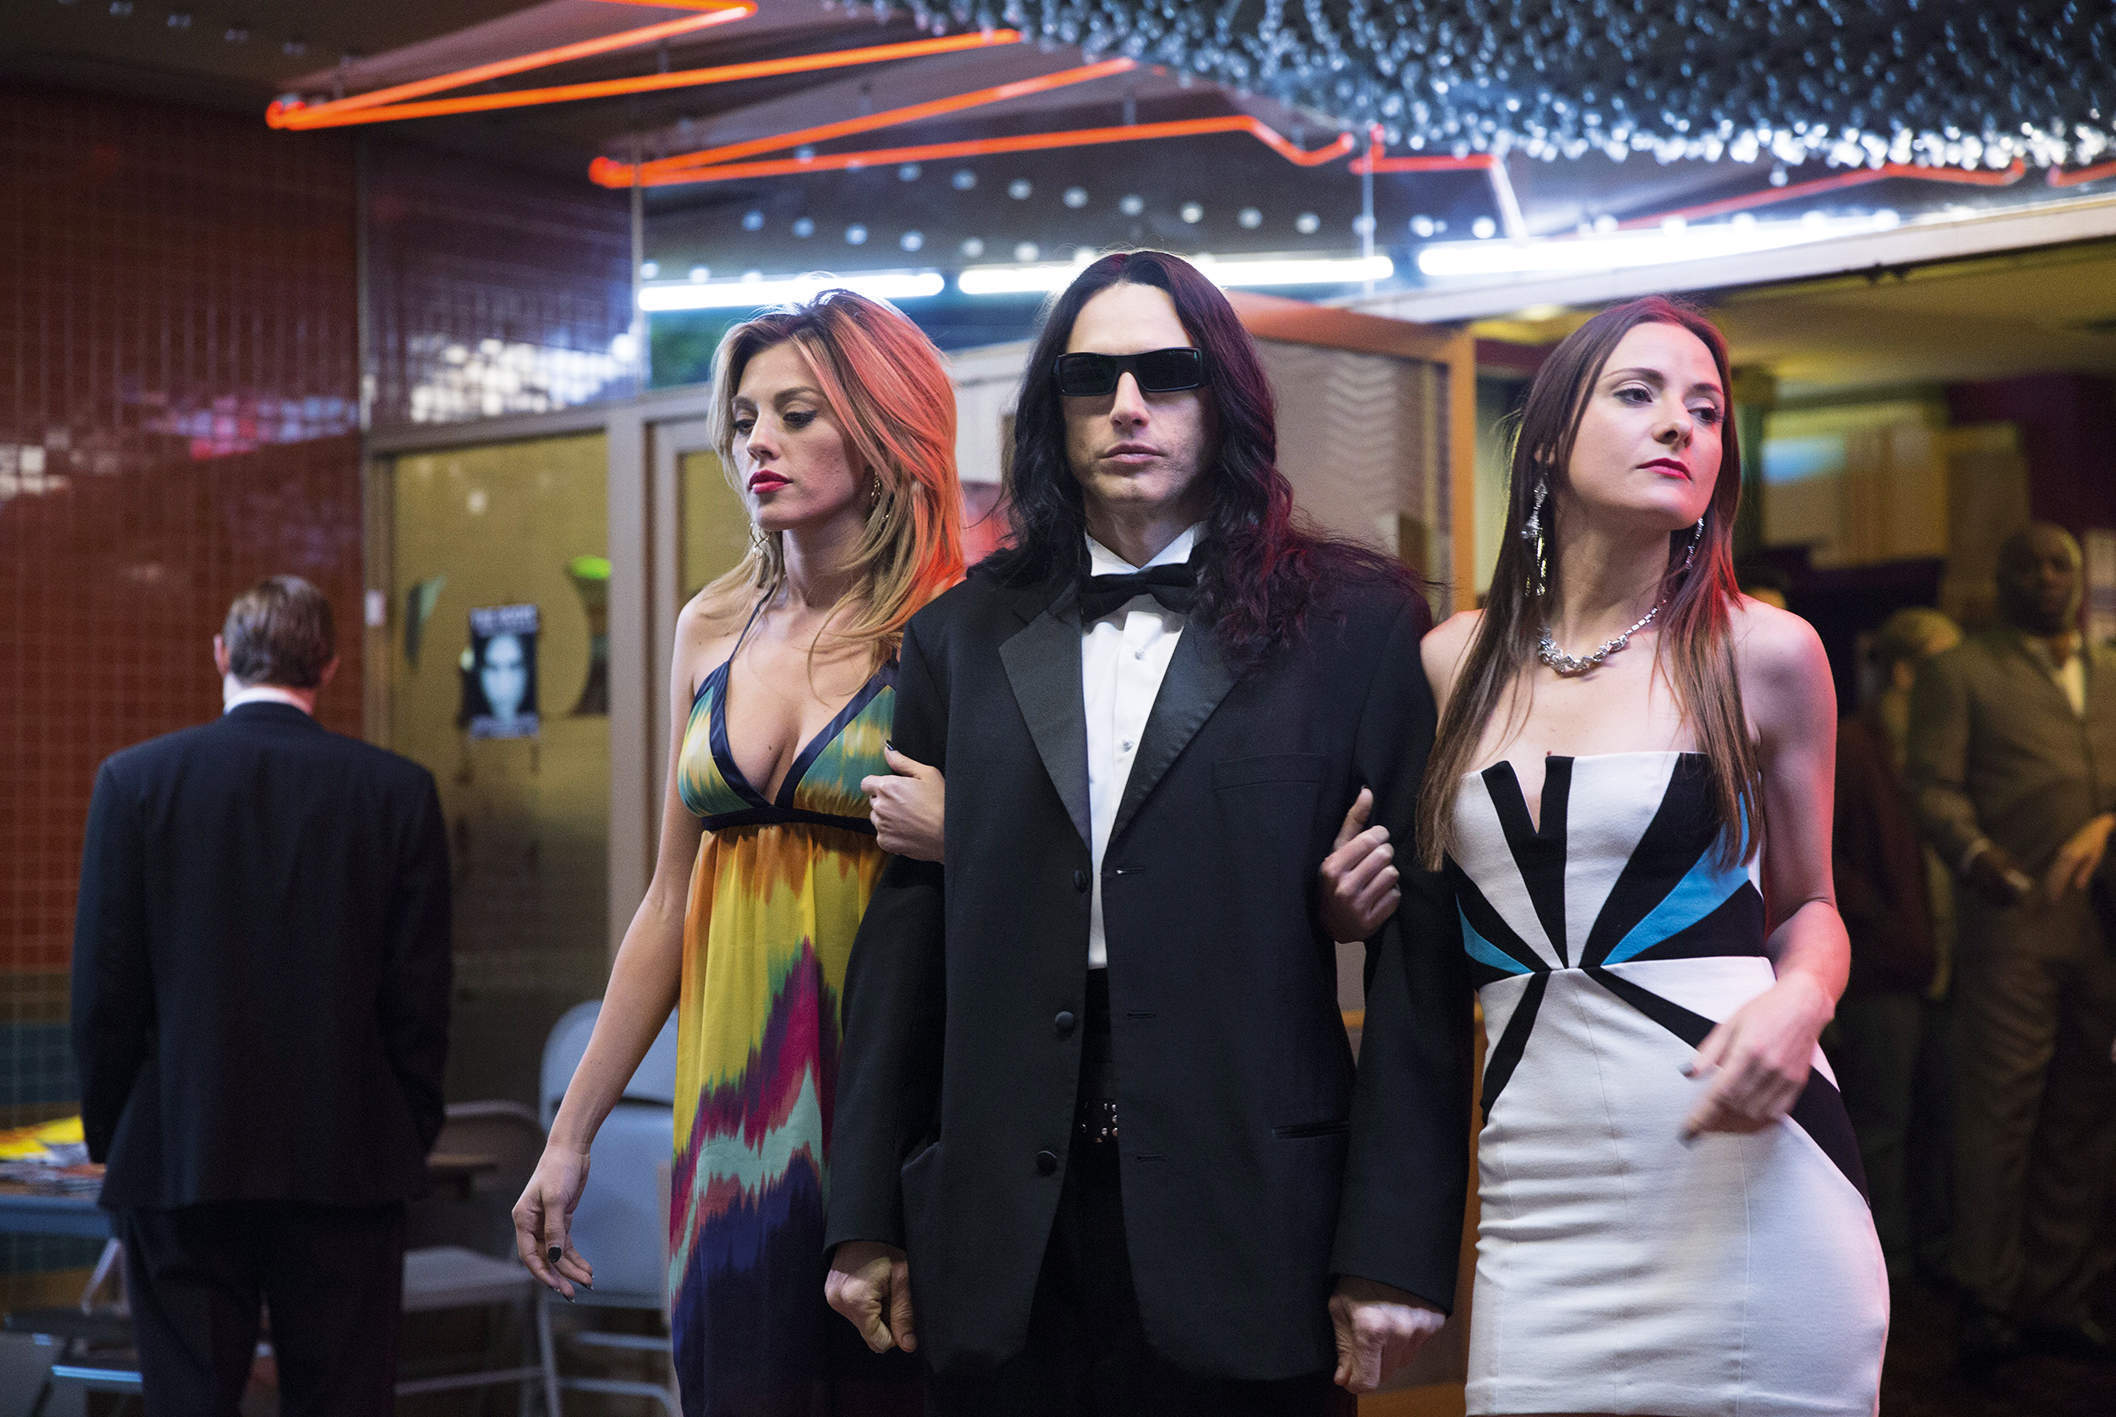 The Disaster Artist shows truly bad cinema, like its opposite, is born of sincerity and vision